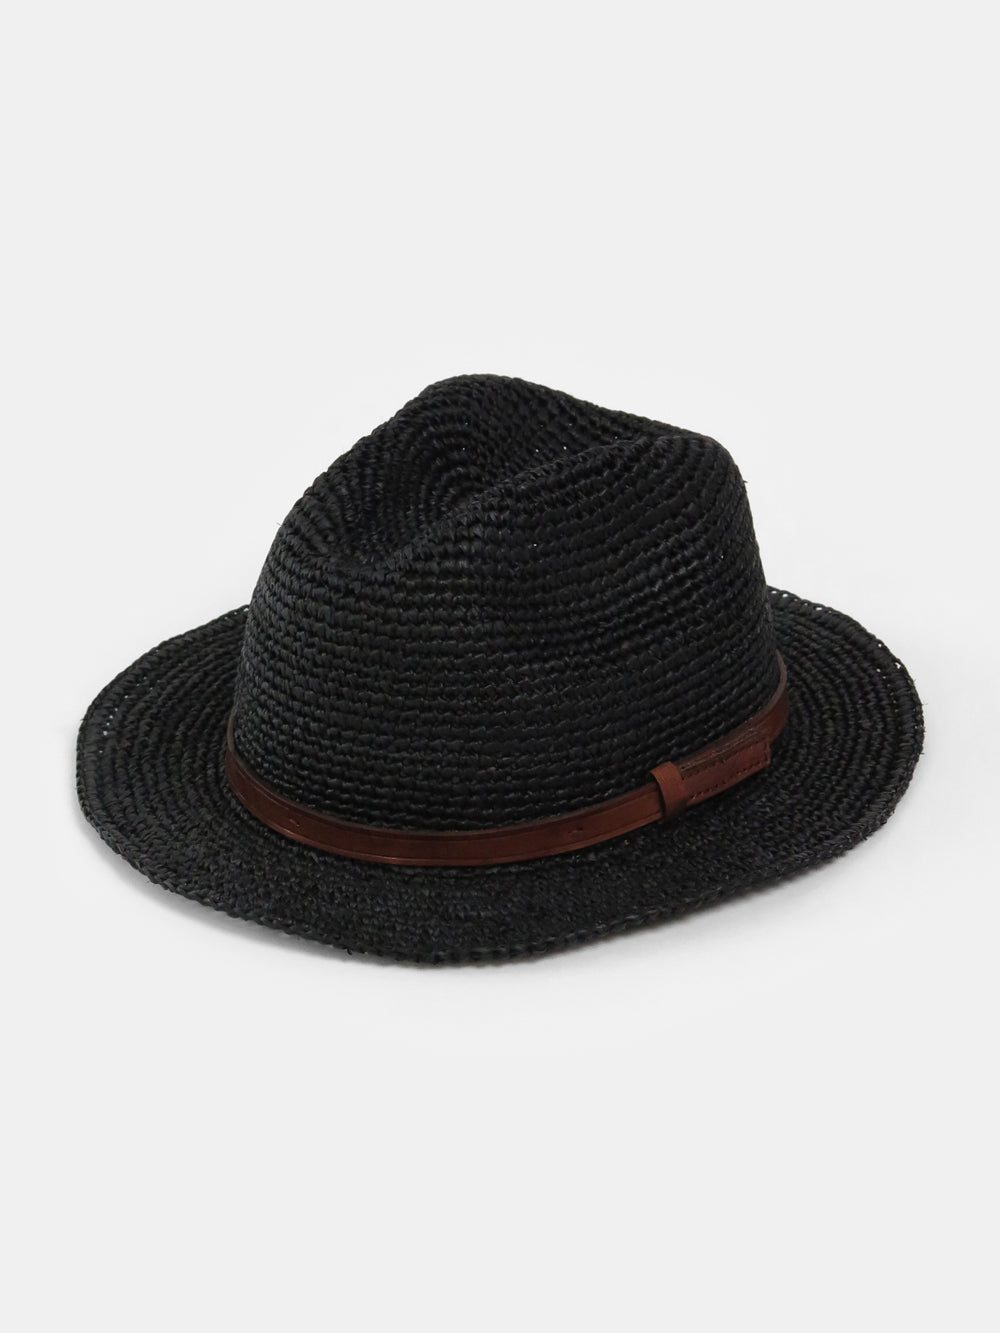 ibeliv lubeman hat in black